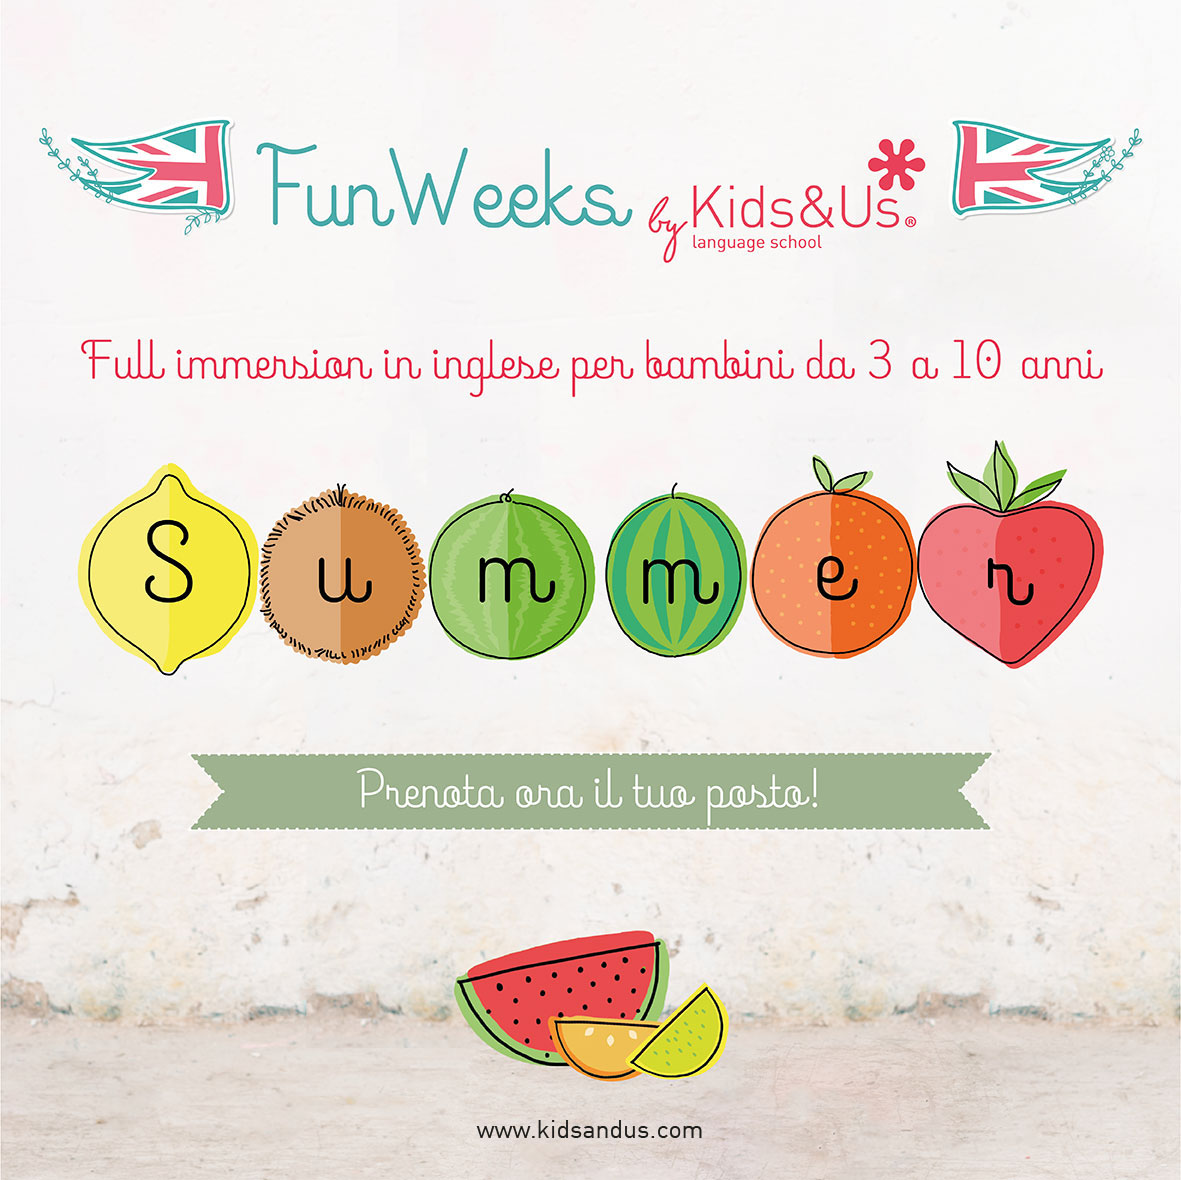 Tornano le Summer Fun Weeks di Kids&Us!